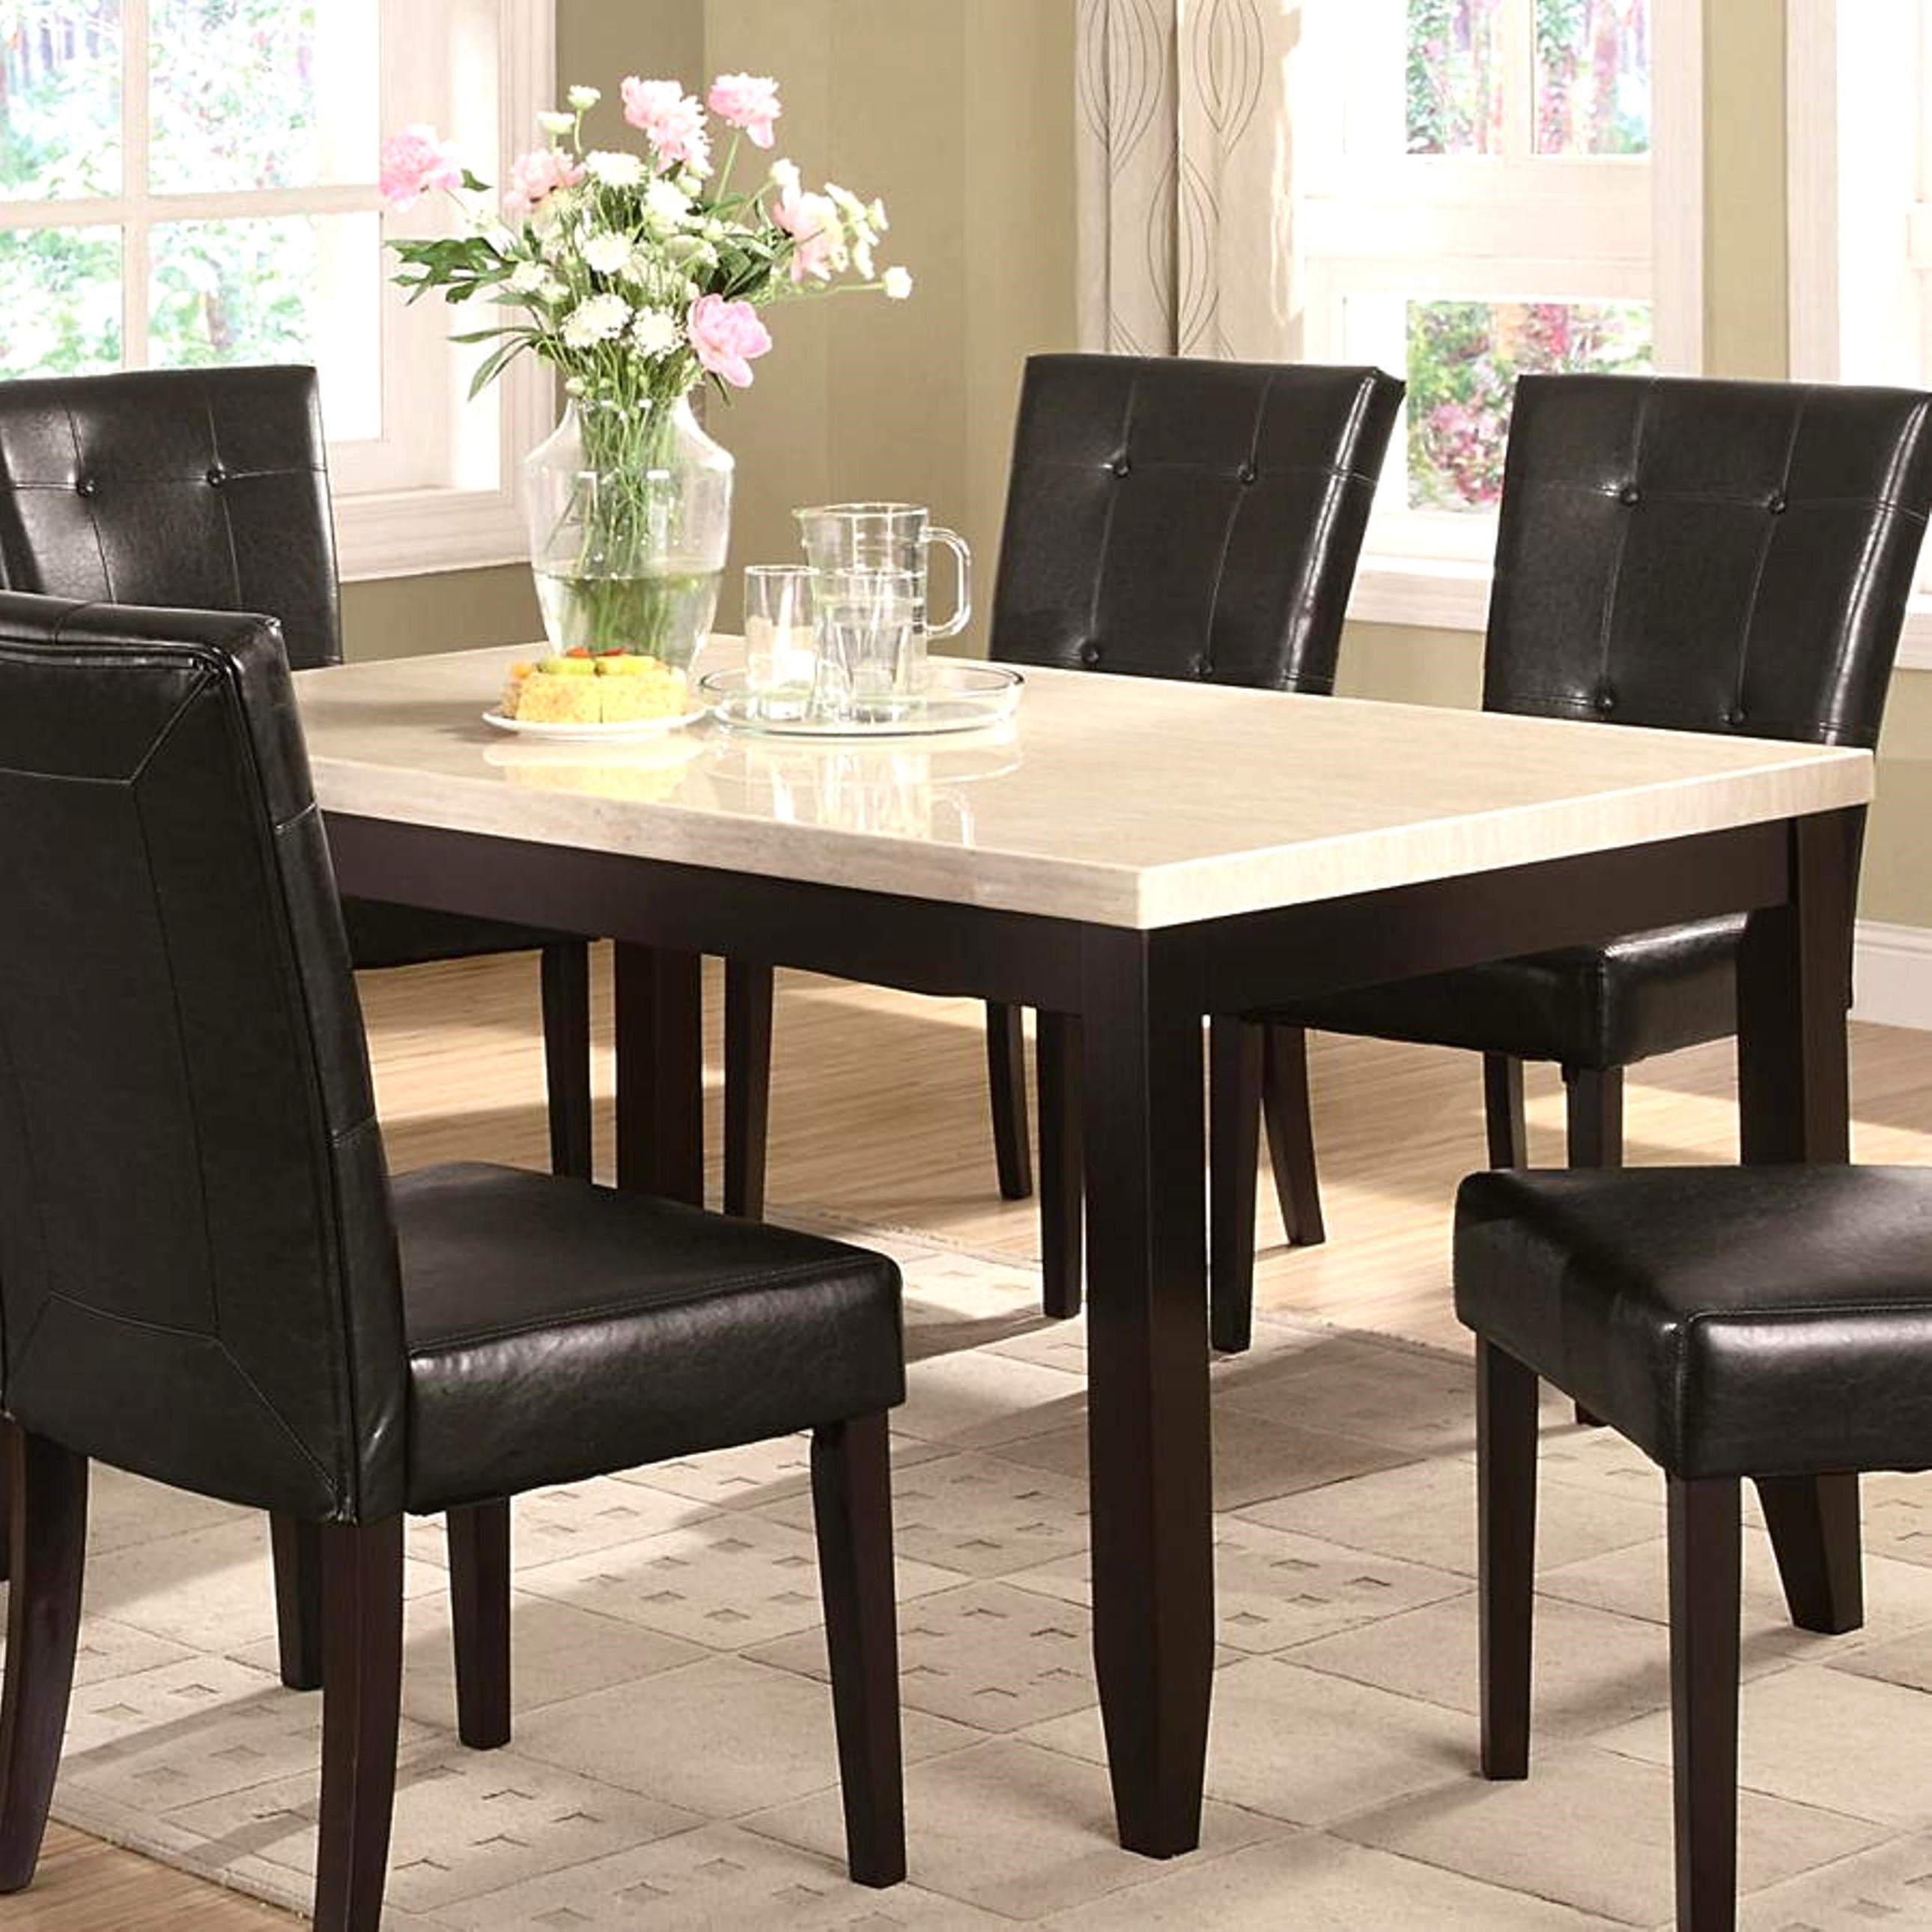 Sasfay Contemporary Style Dining Set with Faux Cream Marb...